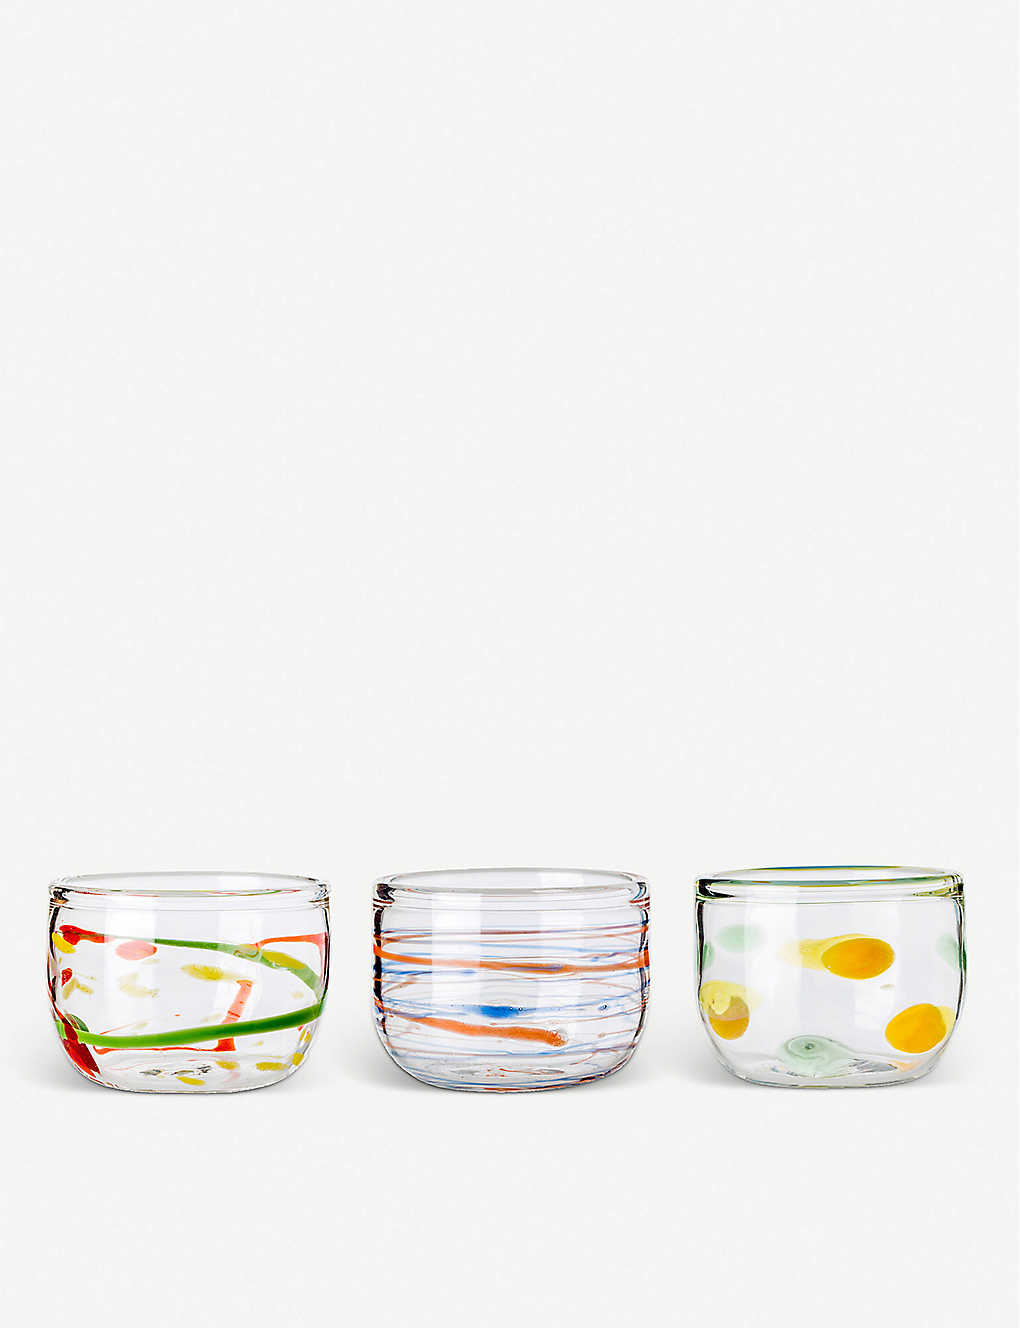 THE CONRAN SHOP: Massimo Lunardon Ciotoline Goto tea light holder 6.5cm